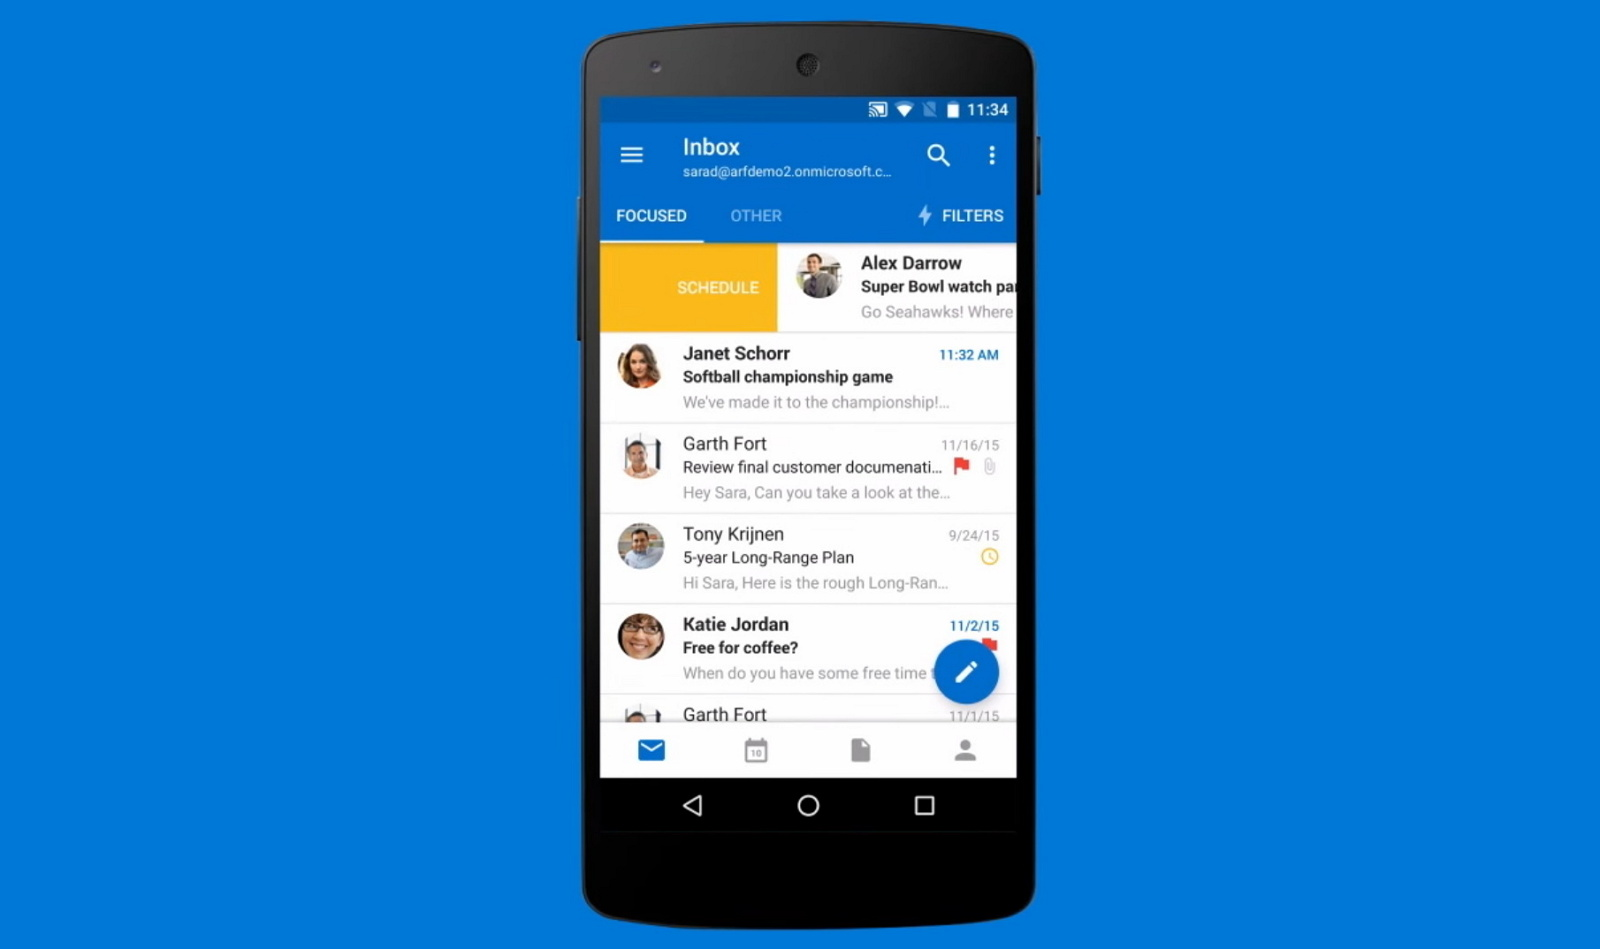 Outlook inbox on Android